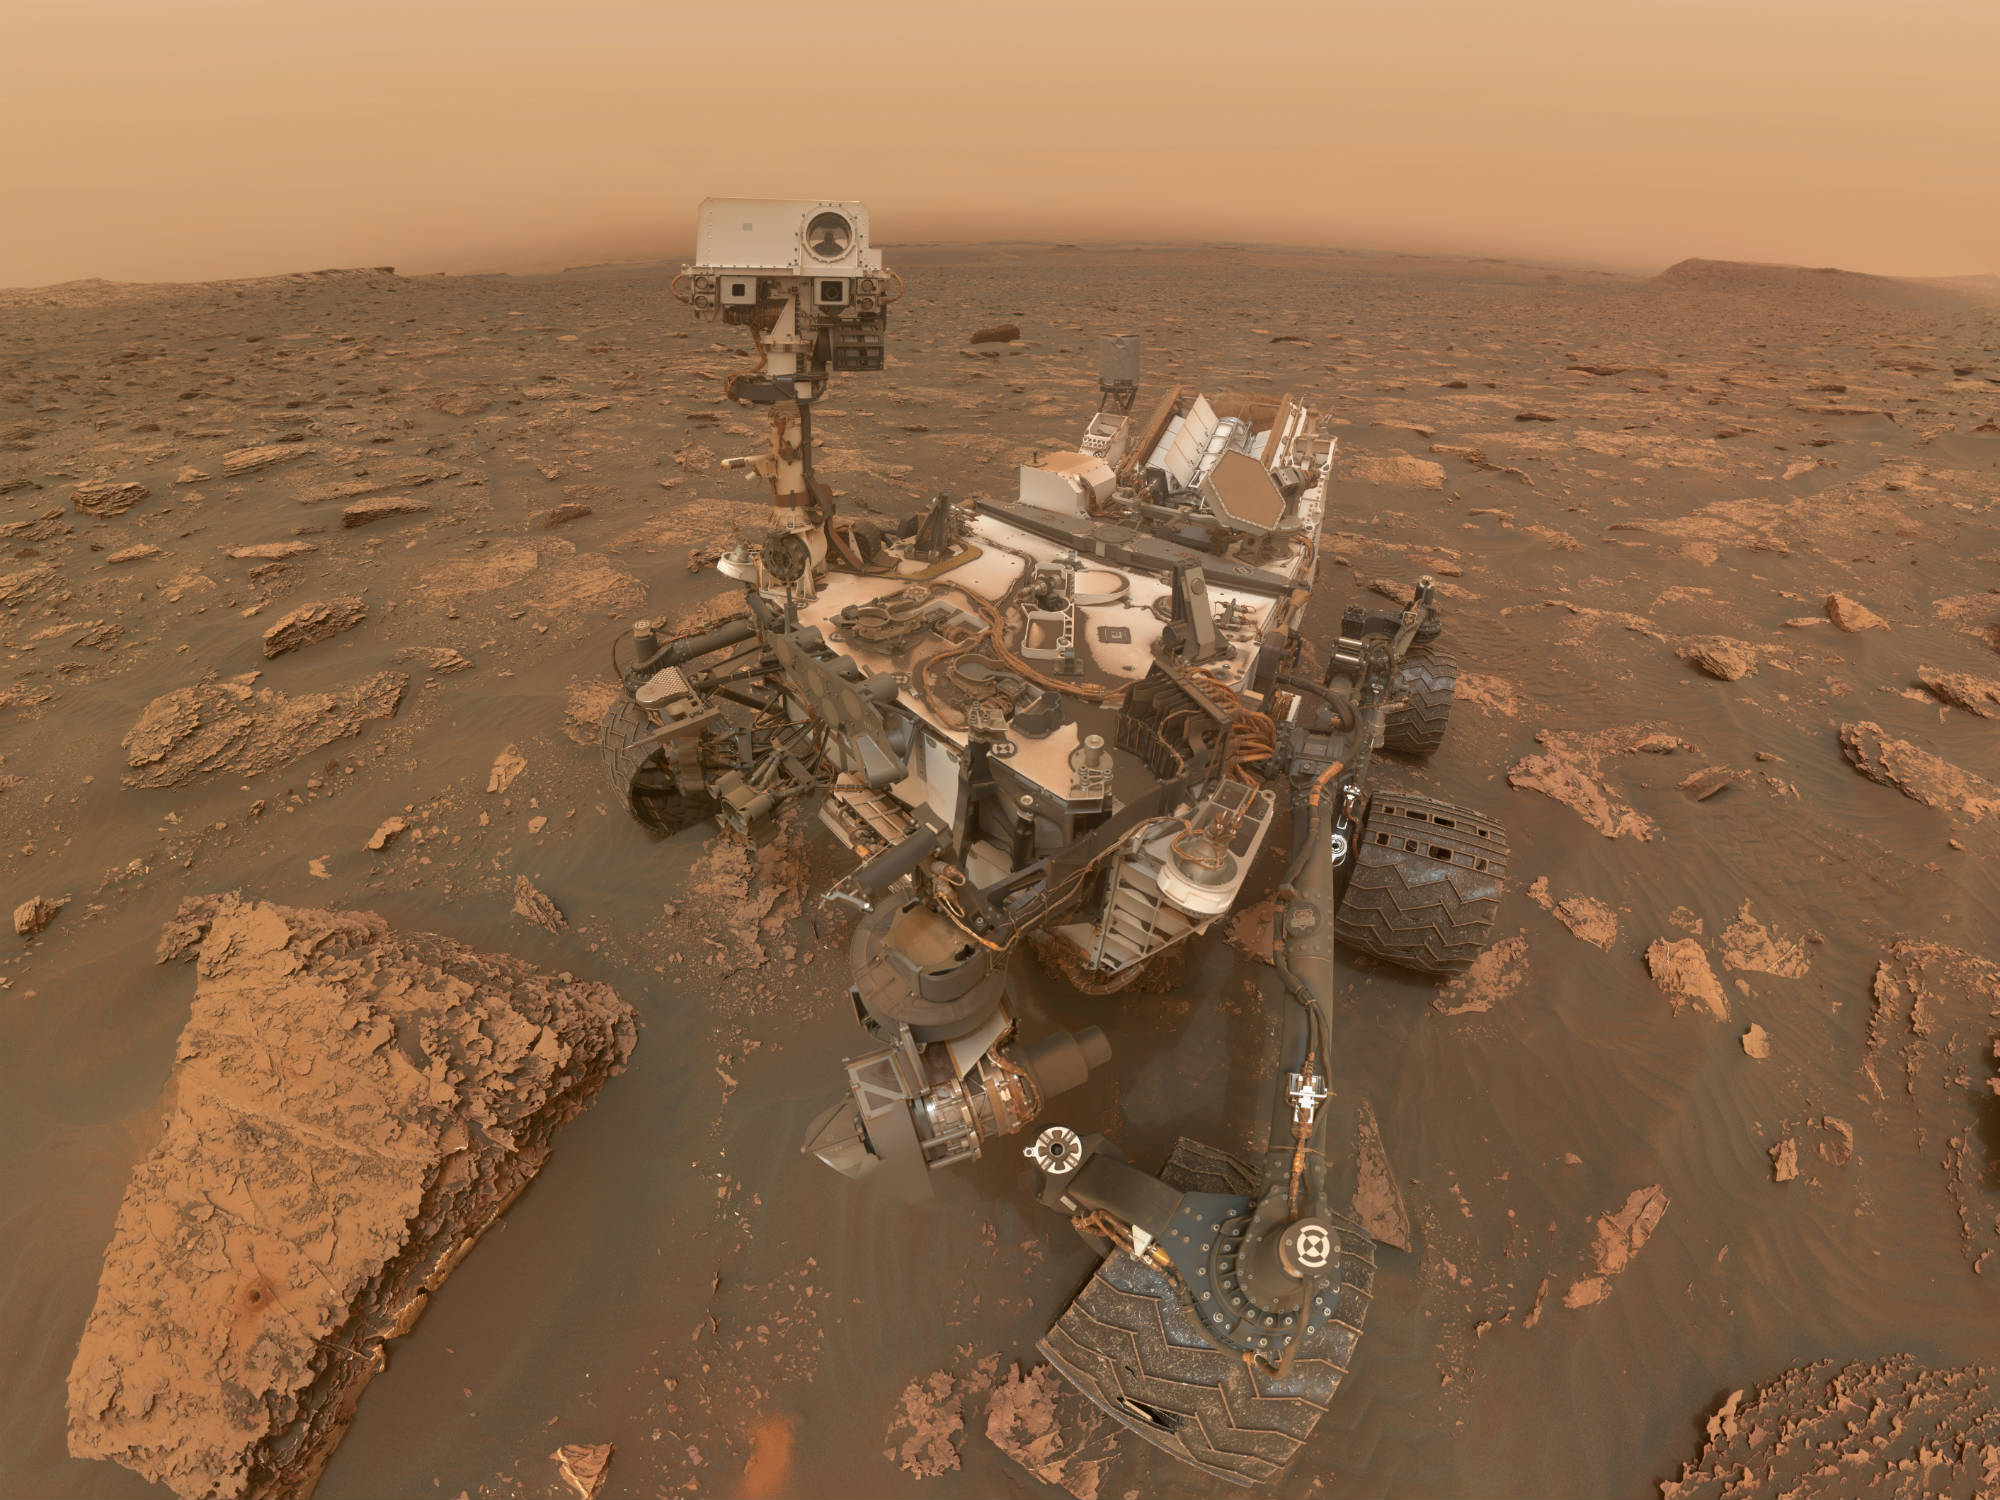 mars curiosity dust storm cropped image